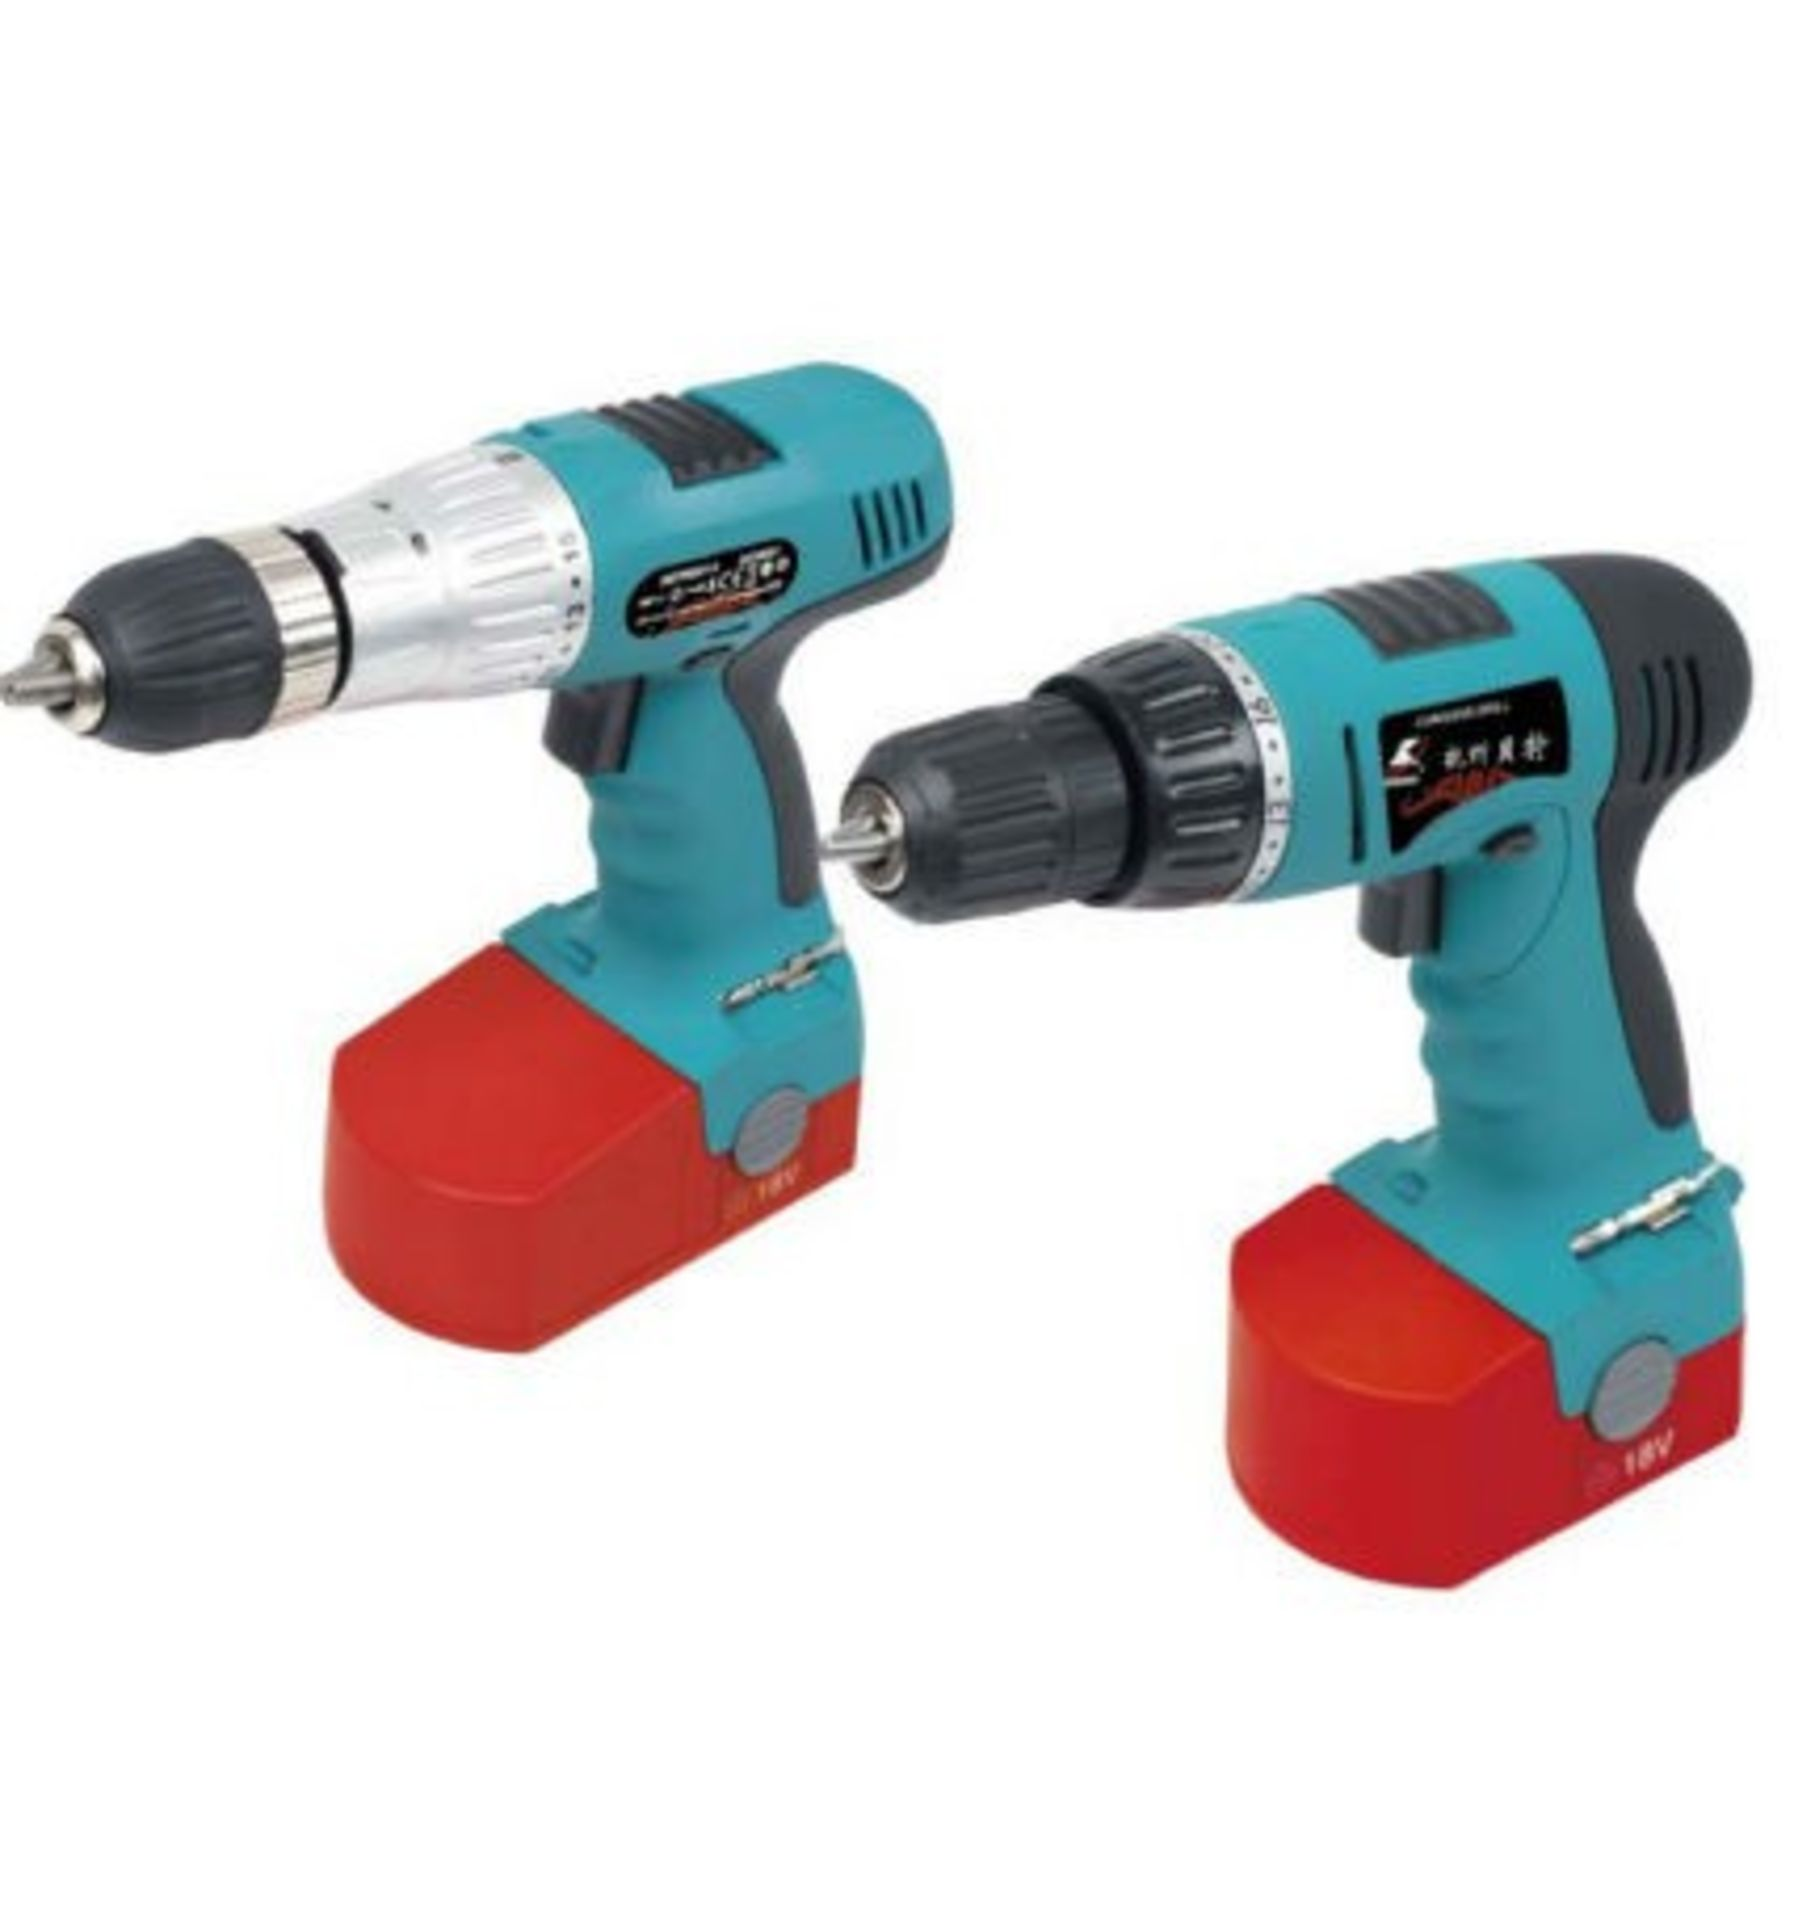 Lot 11532 - V Brand New 18V Twin Drill Kit with Hammer Action and Torque Adjustment - with 15 Asssorted Drill